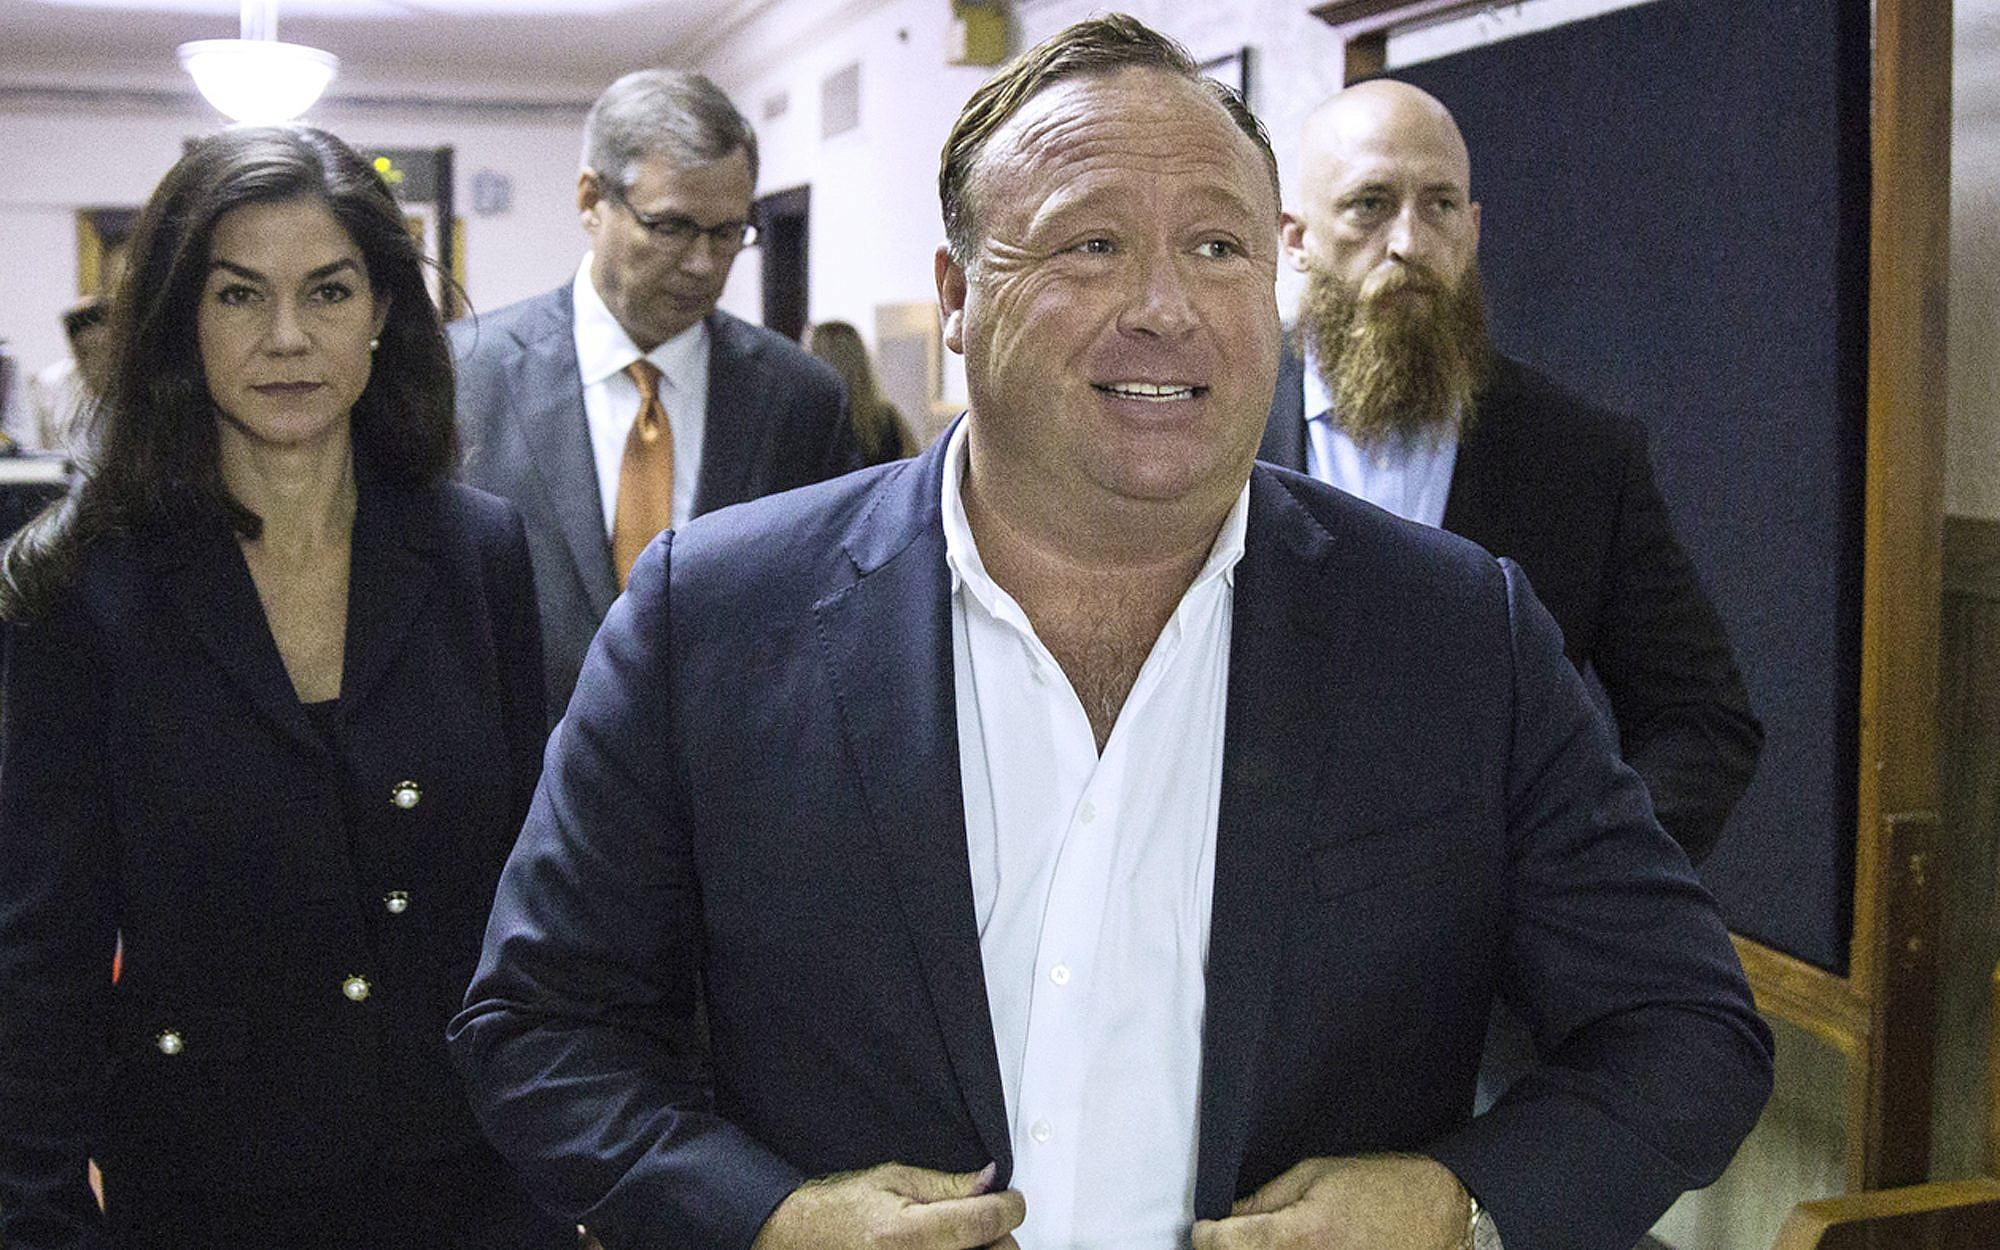 Facebook finally suspends Alex Jones and Infowars for hate speech